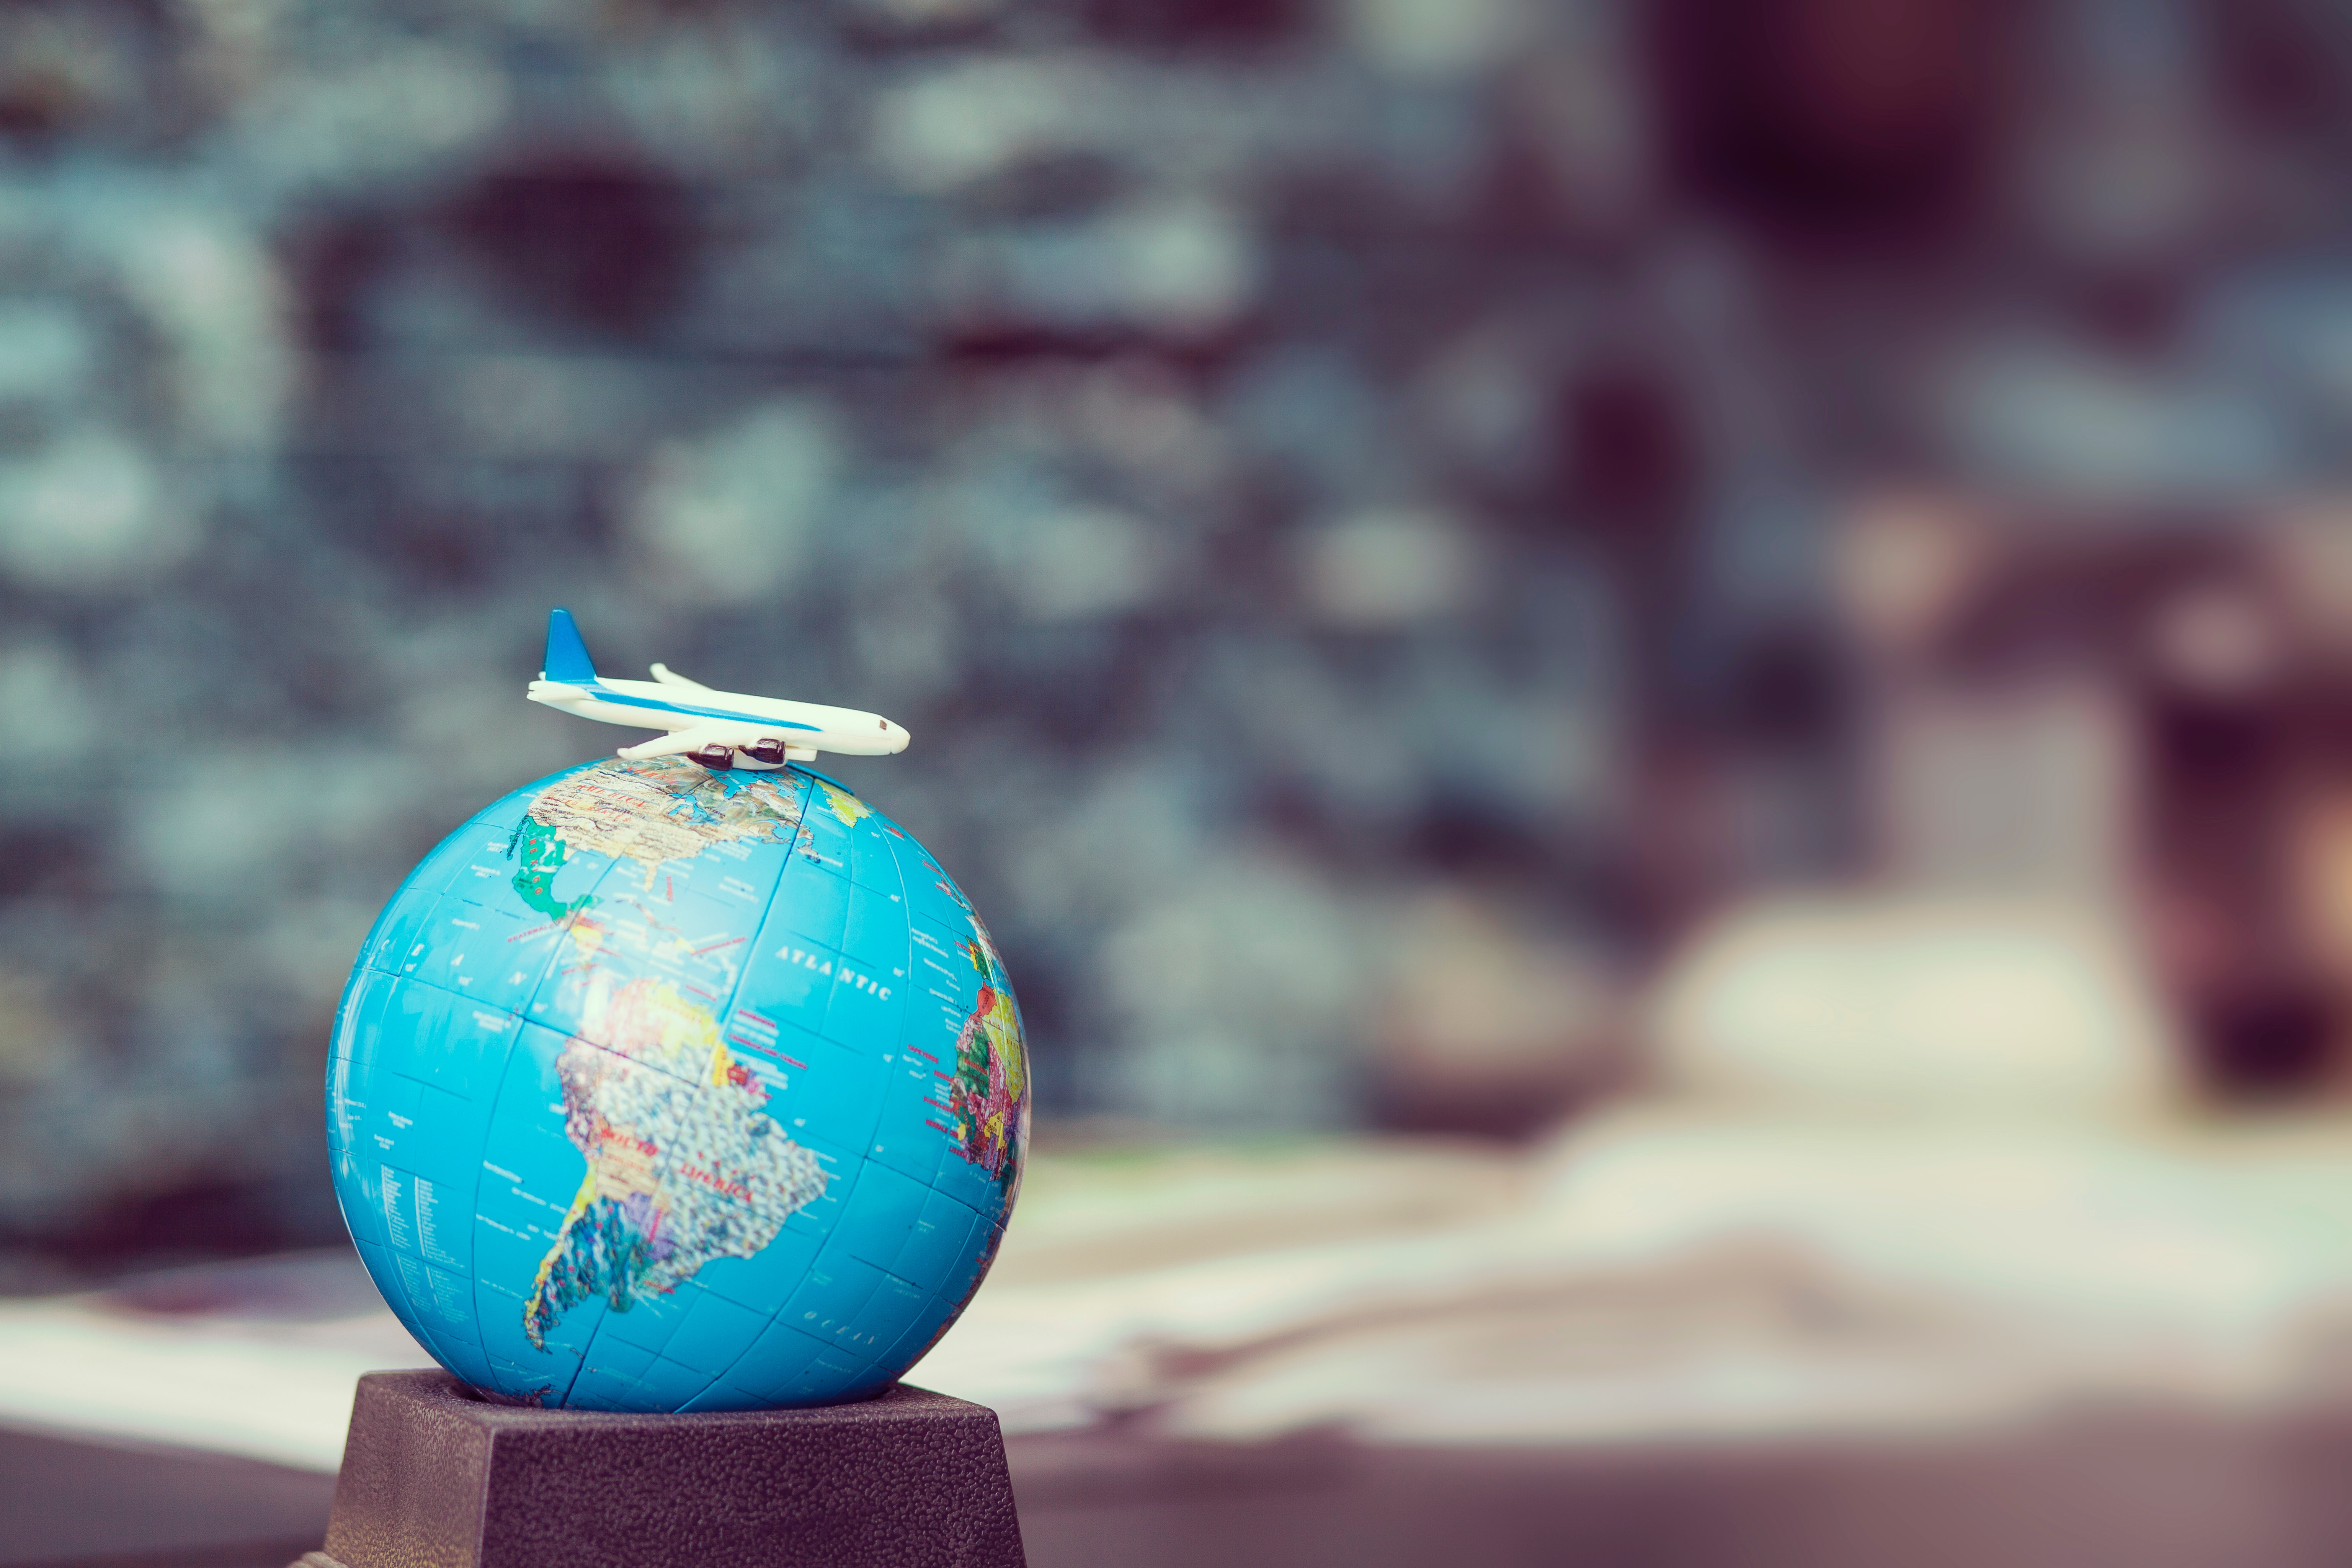 Toy plane on top of globe; image by Frank Vessia, via Unsplash.com.